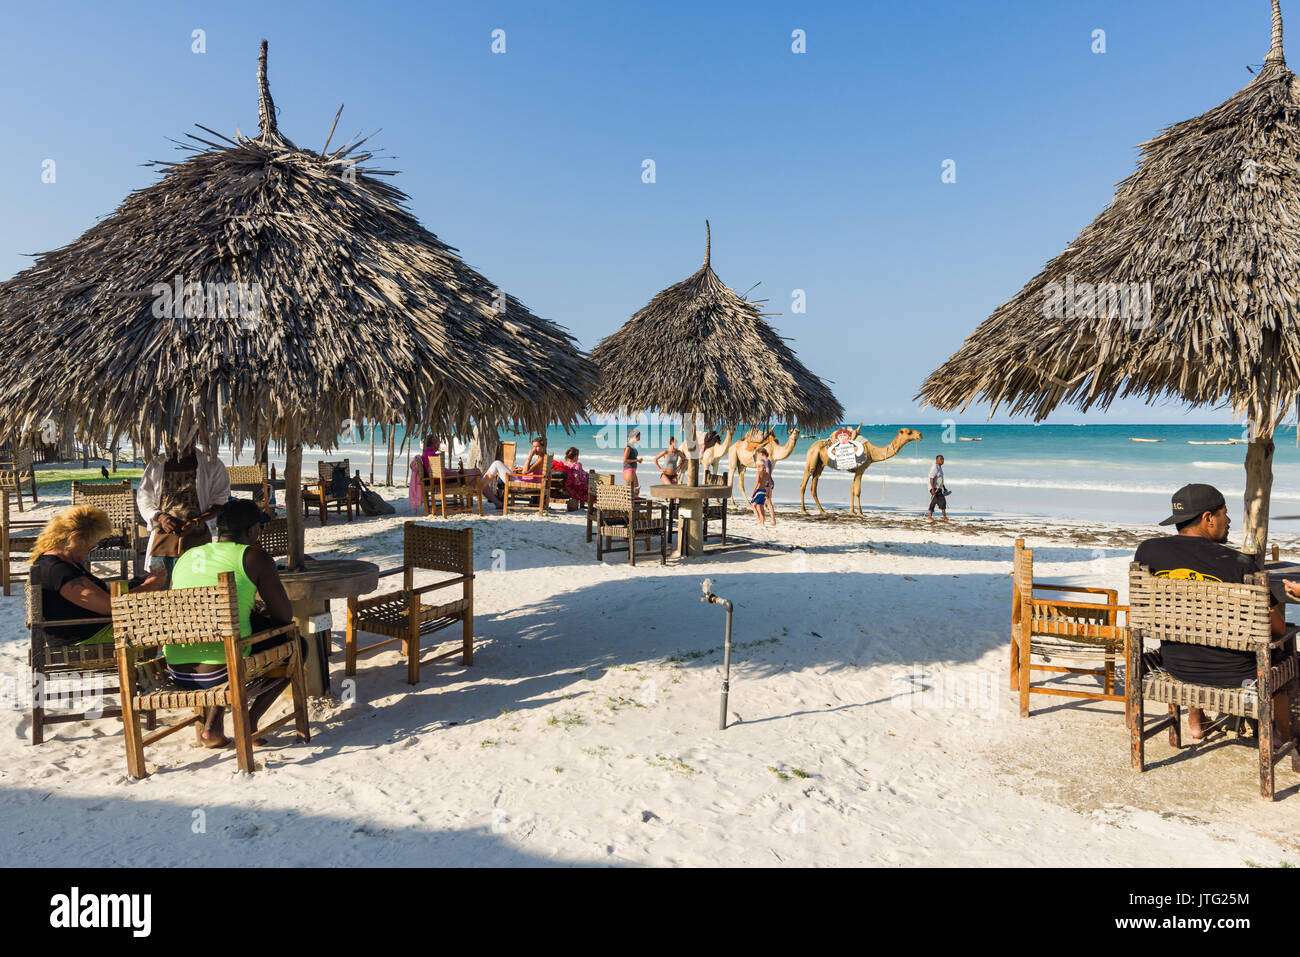 Tourists sitting at beach front ocean view restaurant with palm thatch tables and chairs as two camels walk past on beach in background - Stock Image